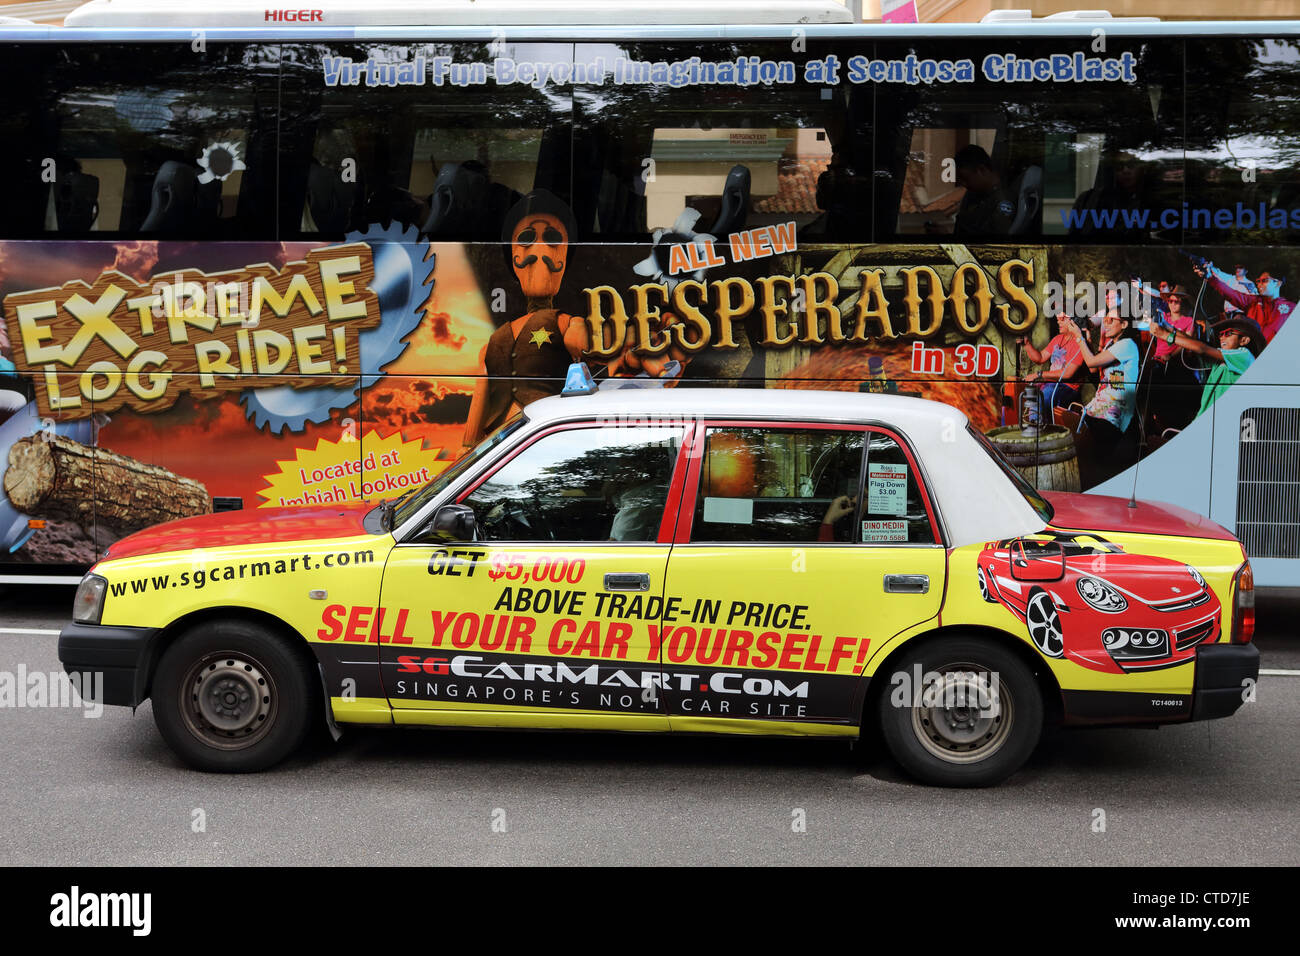 Taxicab and bus in Orchard, Singapore - Stock Image